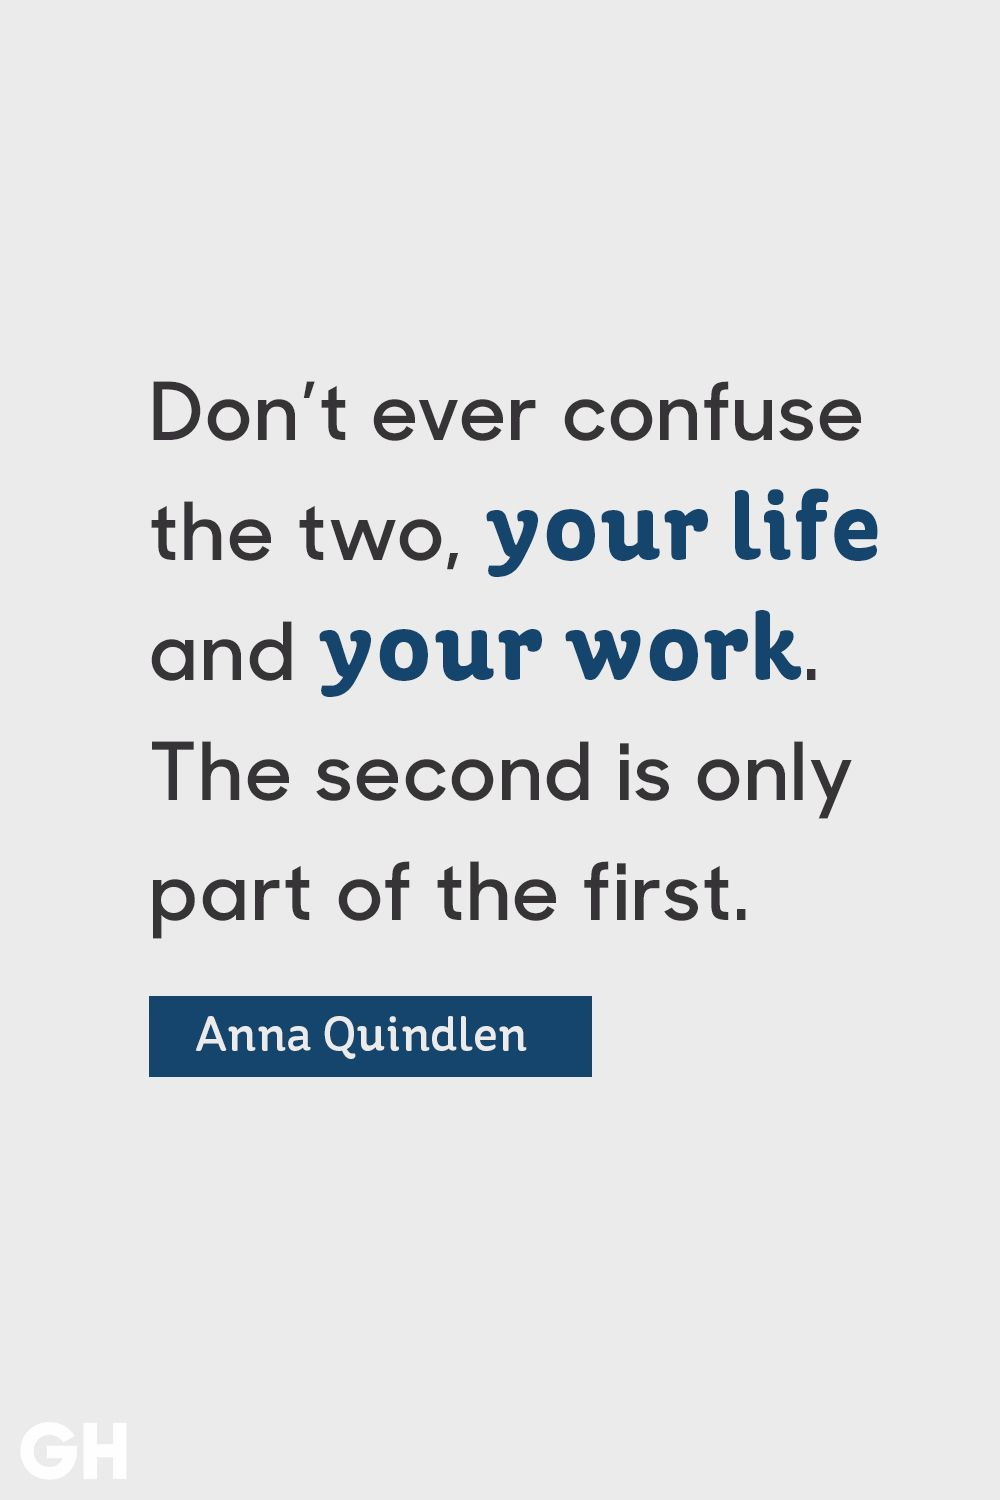 Image of: Sad Anna Quindlen Graduation Quote Good Housekeeping 15 Inspirational Graduation Quotes Best Quotes For High School And